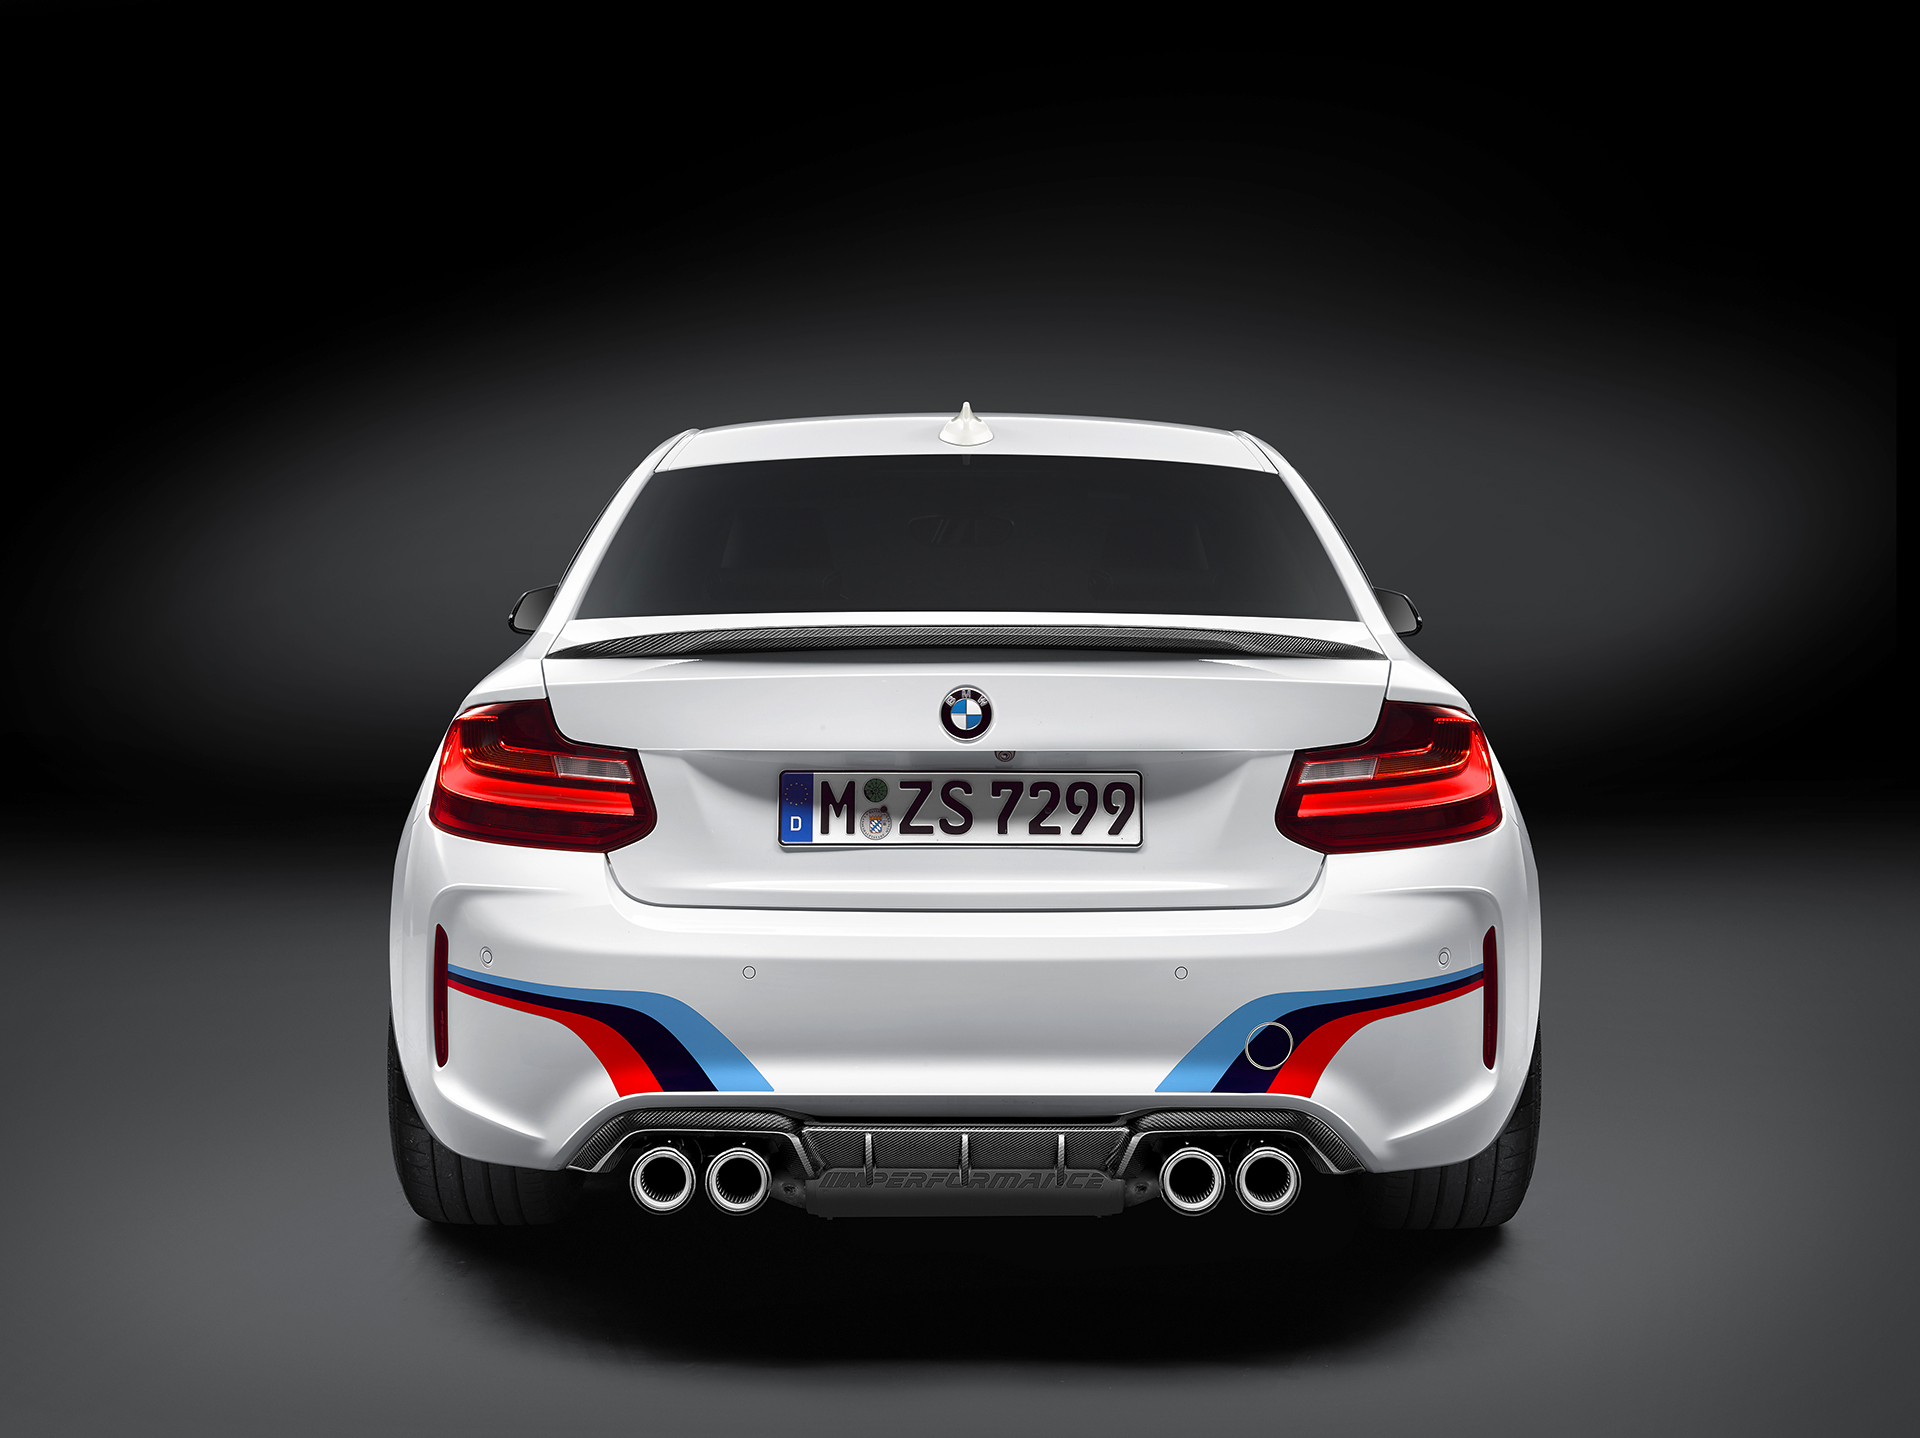 BMW M2 Coupé 2016 BMW M Performance Parts - arrière / rear